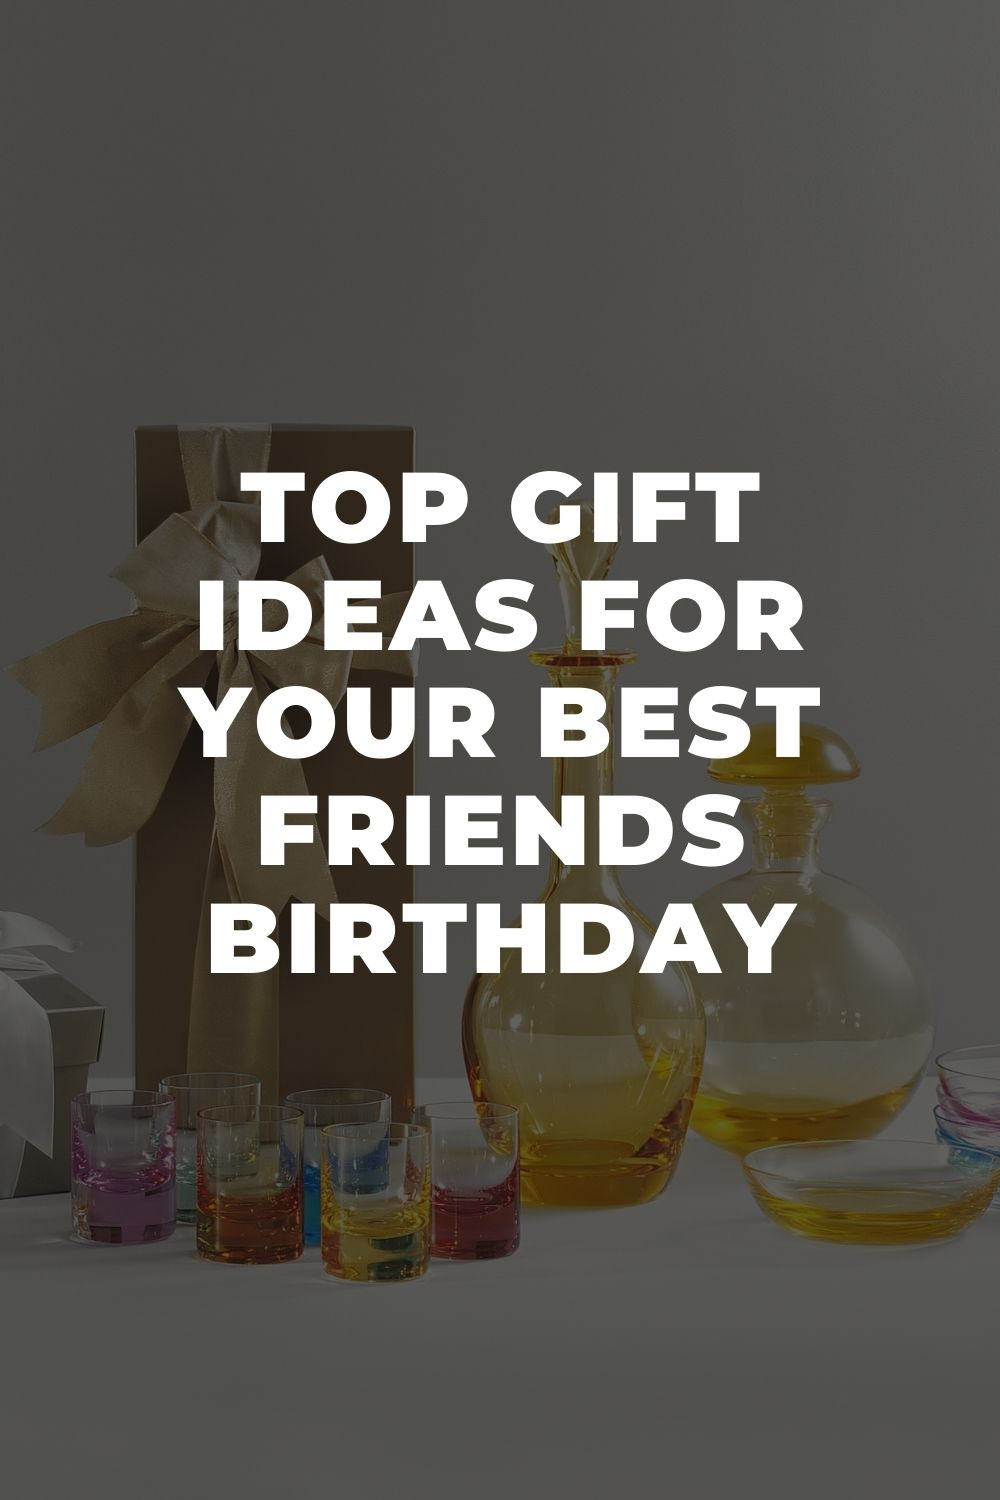 Top Gift Ideas For Your Best Friends Birthday